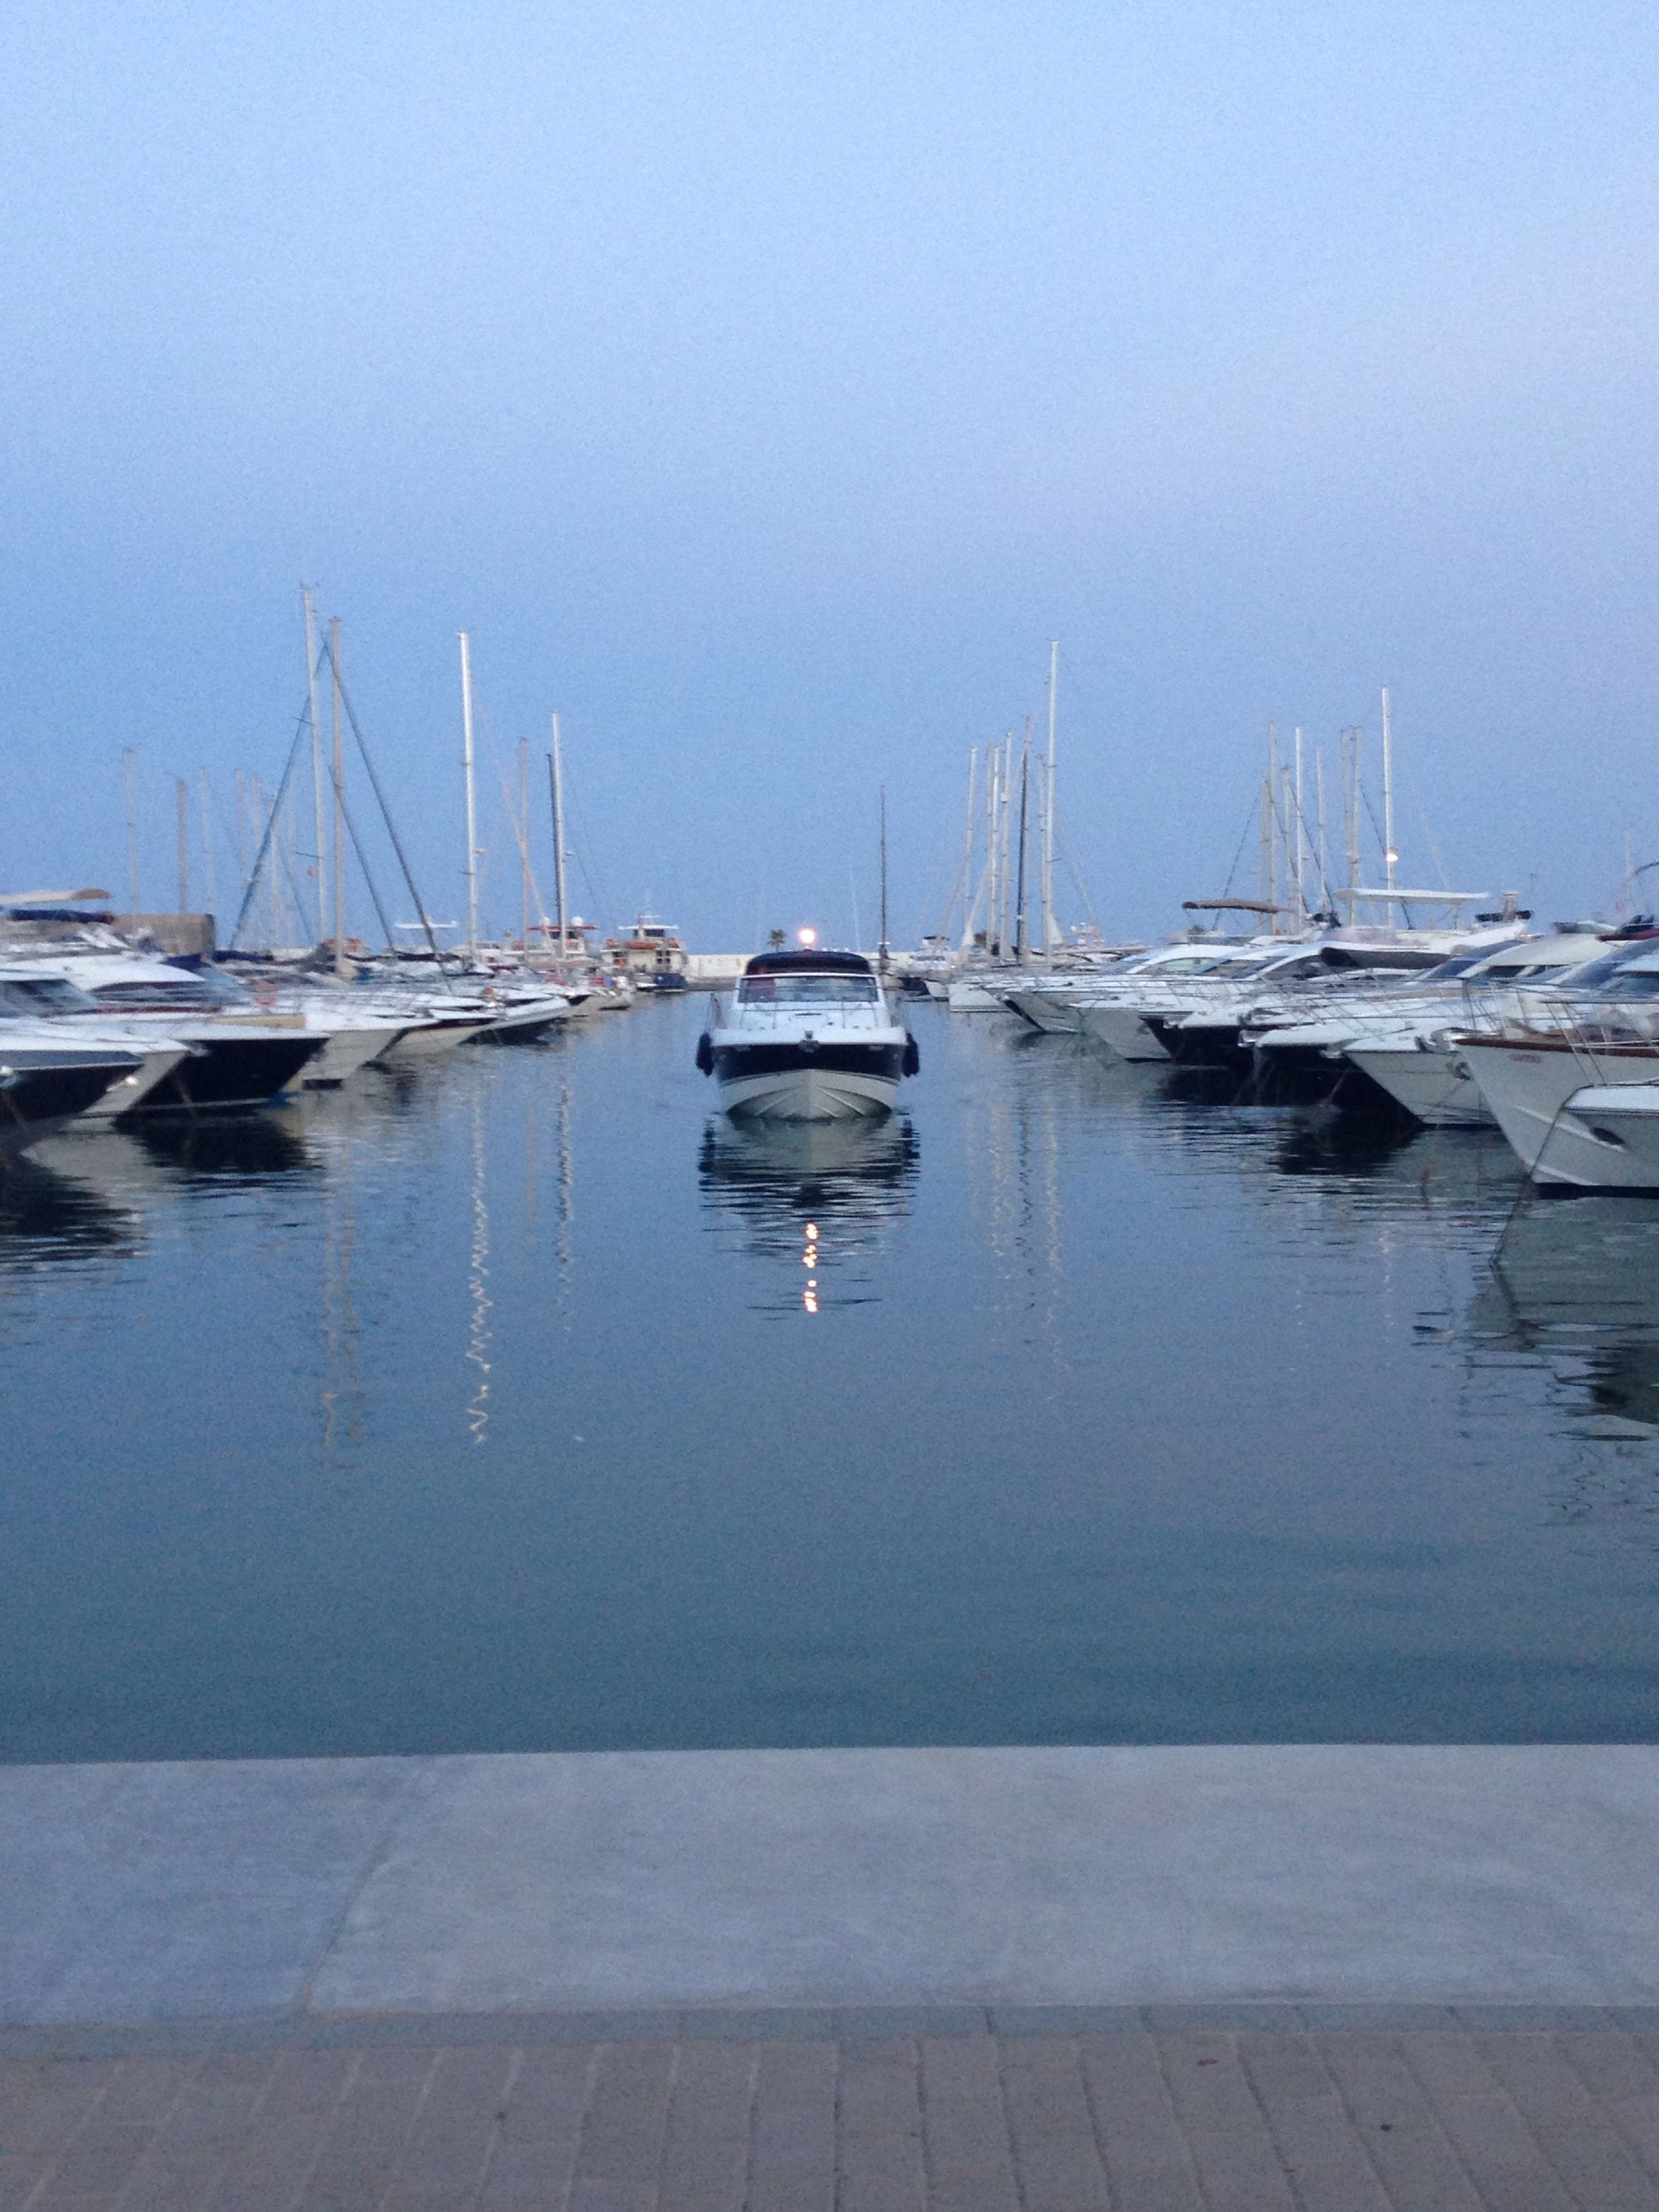 Santa Eulalia Marina, Ibiza - yachts, sea, boats, photography, sunset, symmetry (photograph by Yasmin Stopford)